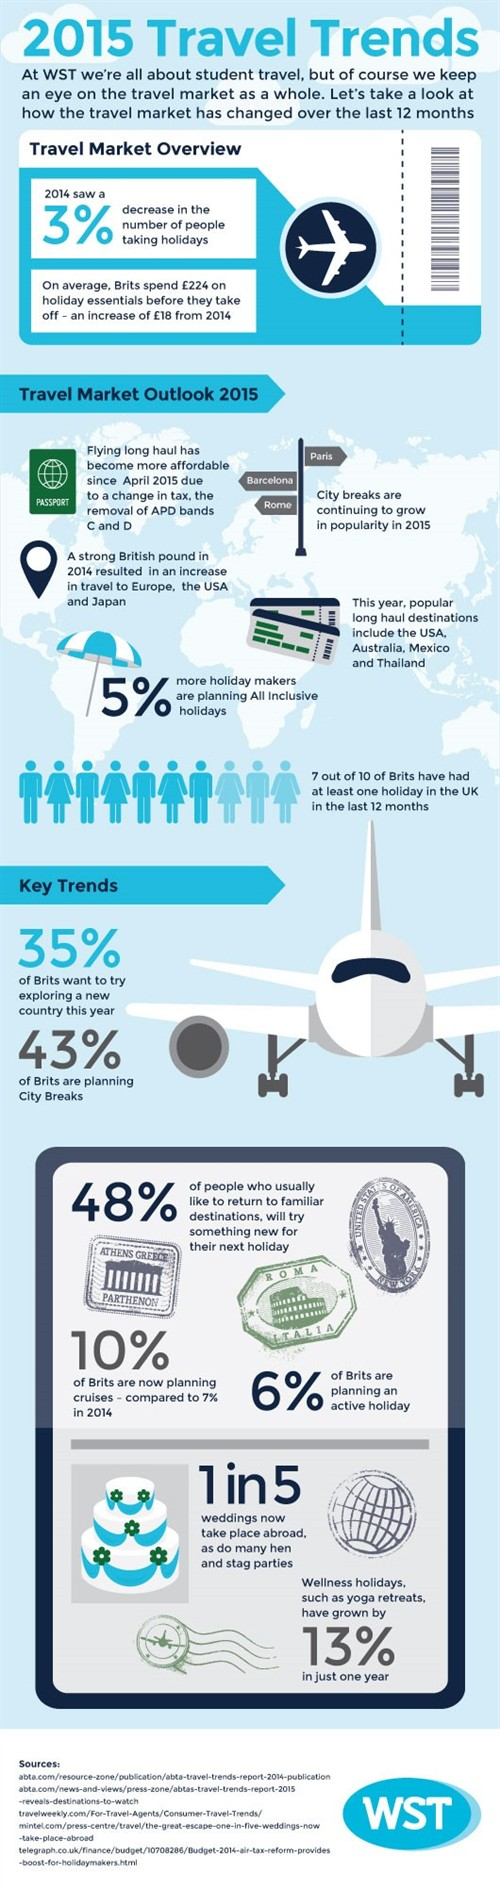 WST 2015 Travel Trends Infographic